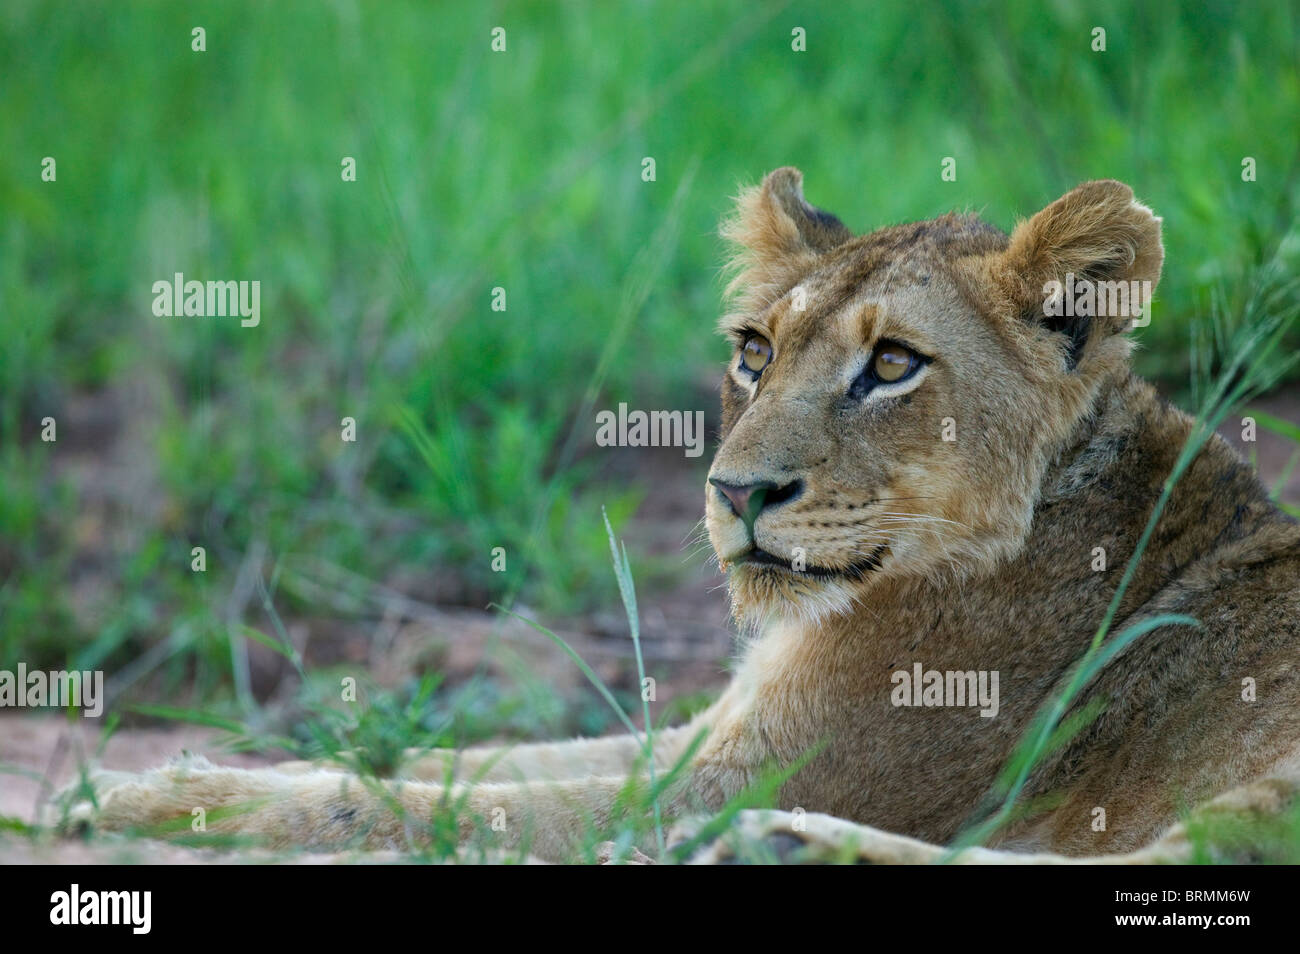 Side-on portrait of a lion cub looking upwards - Stock Image